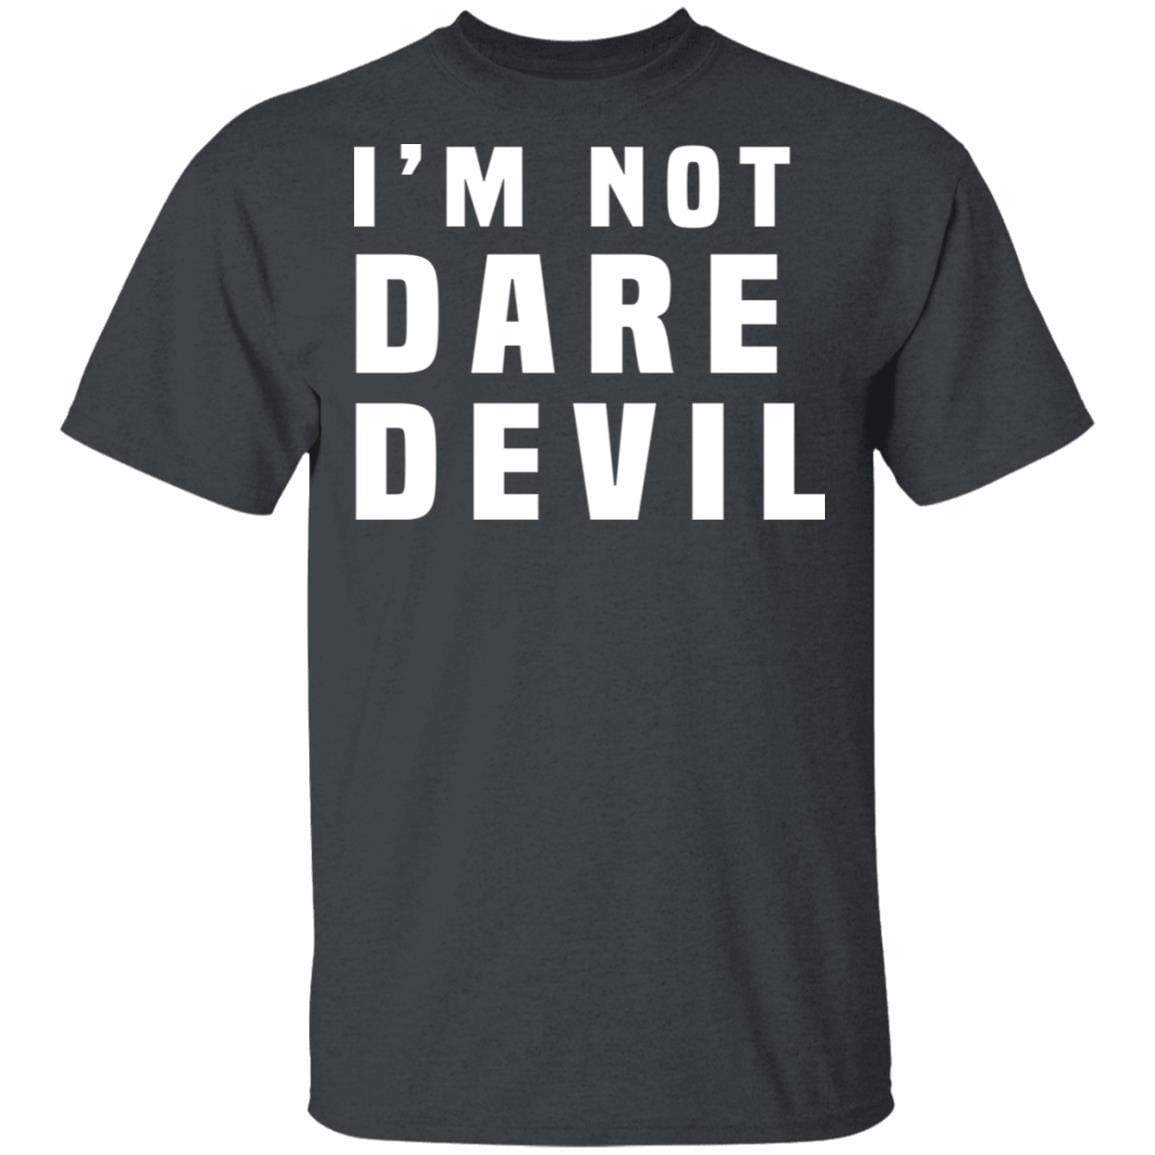 I'm Not Dare Devil T-Shirts, Hoodies 1049-9957-87589167-48192 - Tee Ript